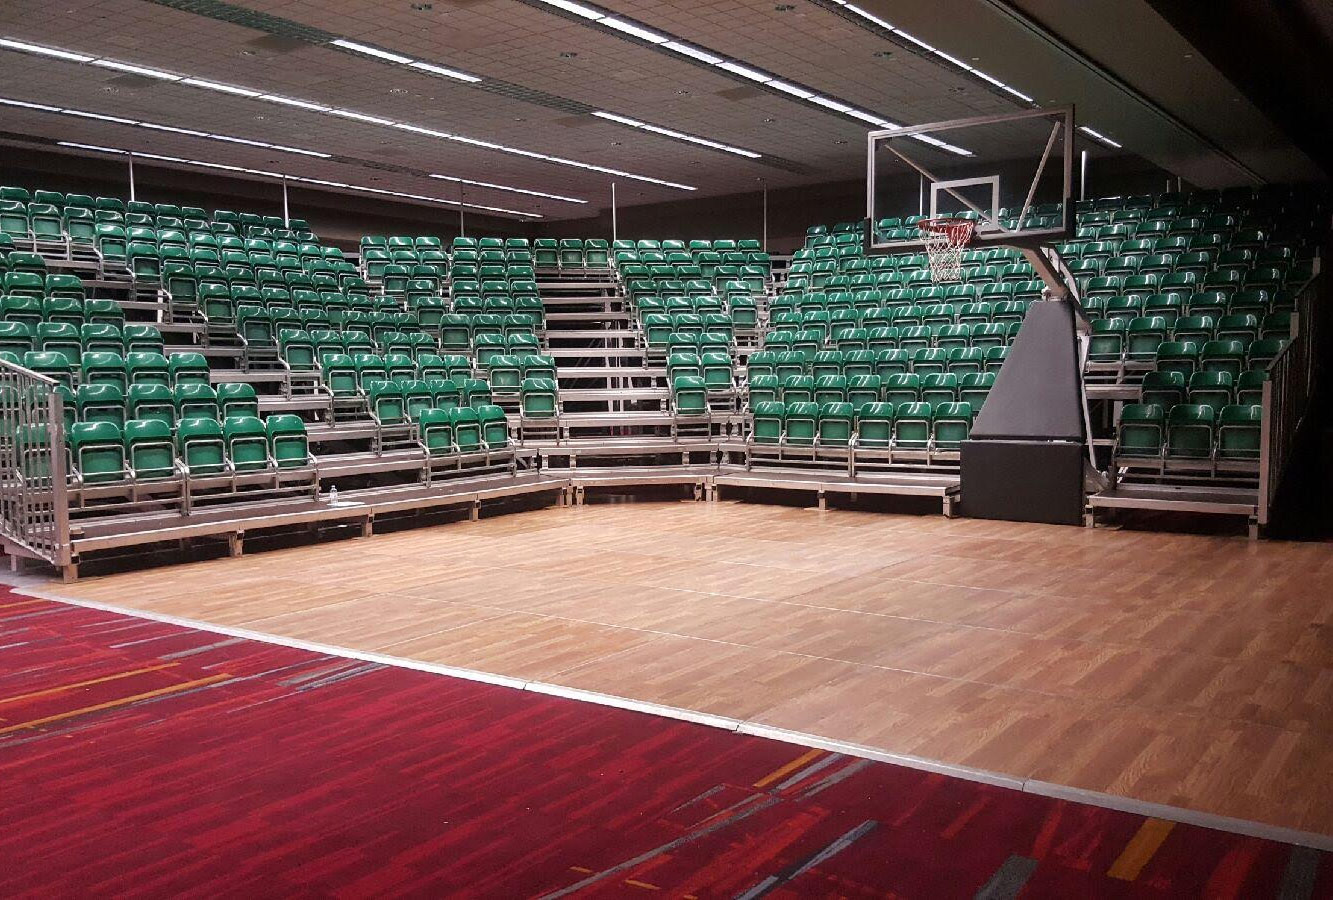 100 event venues for rent los angeles 11433 best for Average basketball court size